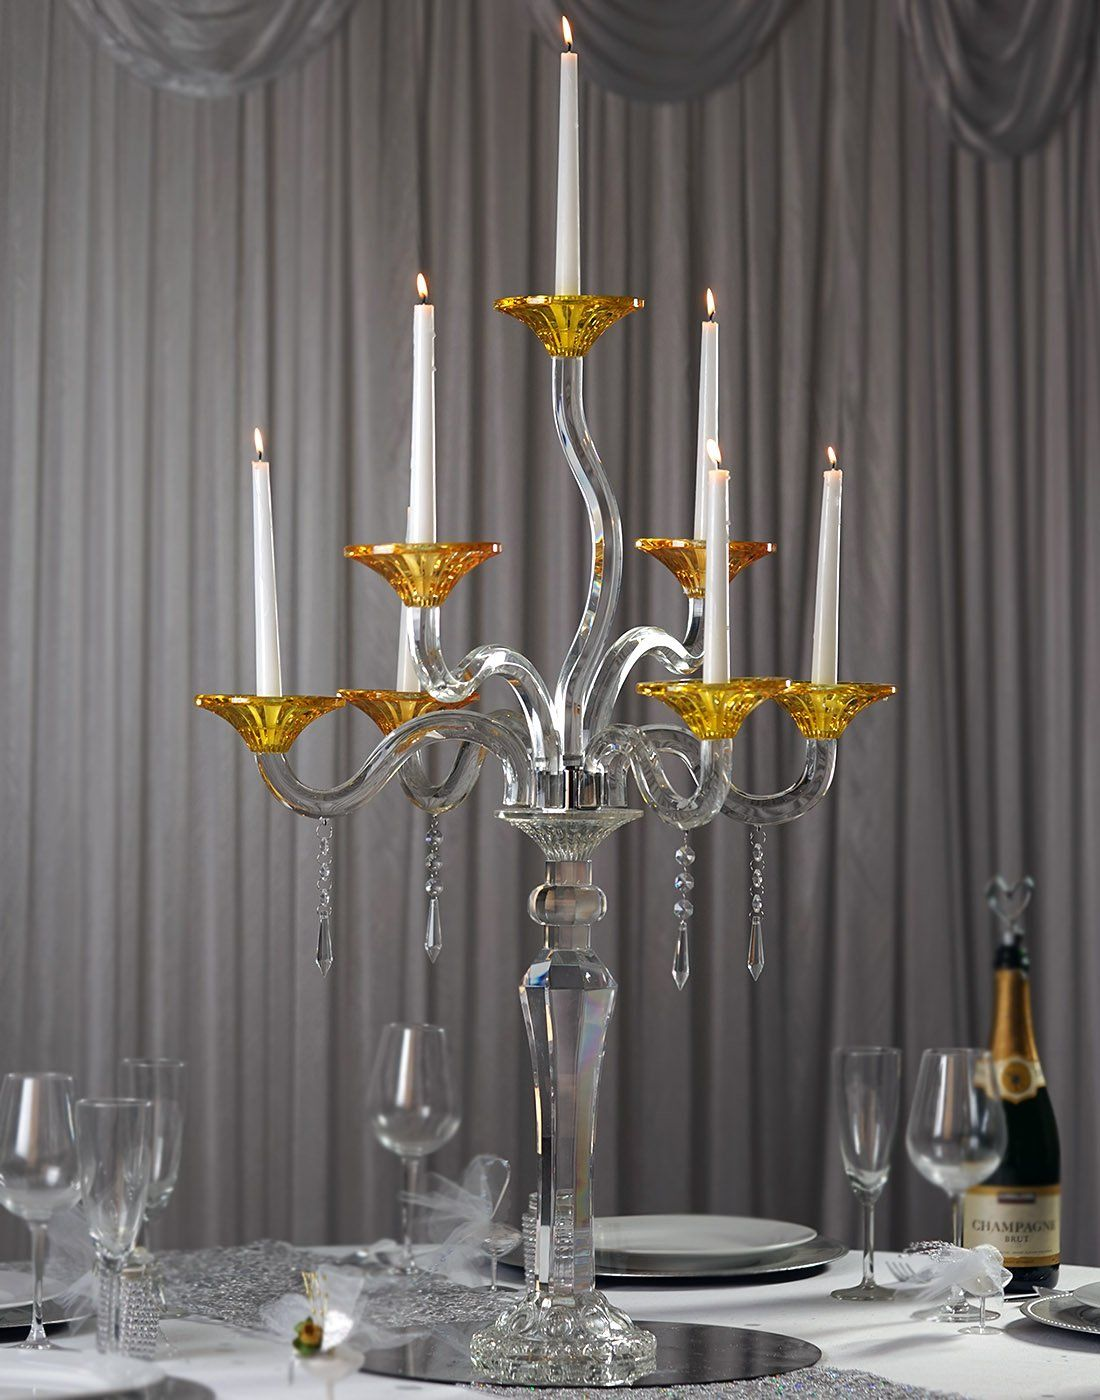 33 Tall Handcrafted 7 Arm Dual Tone Crystal Glass Tabletop Candelabra Baroque Taper Votive Can Candle Holders Wedding Candle Holders Candleholder Centerpieces